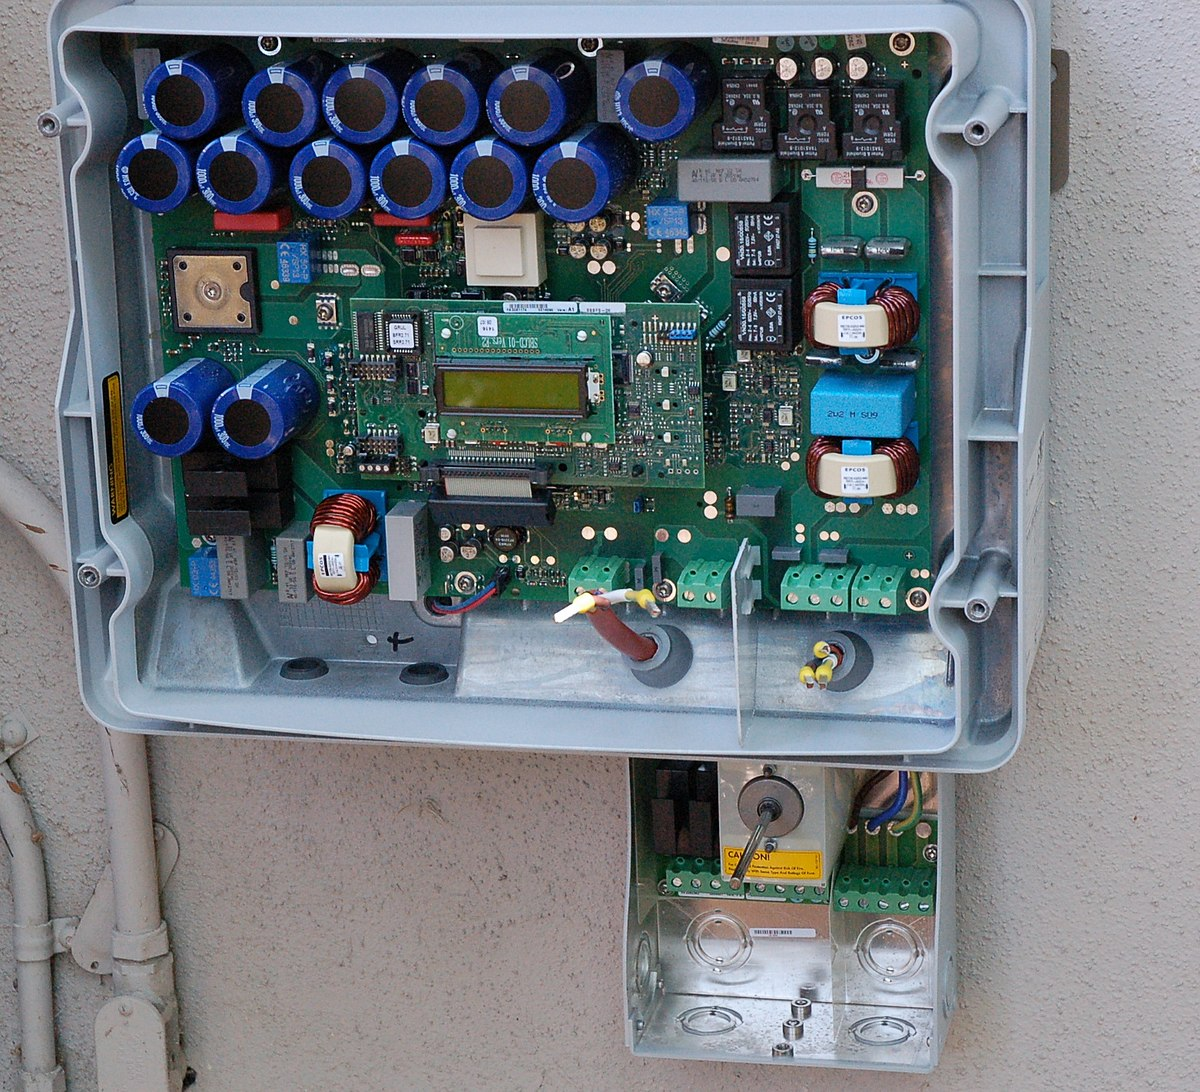 Solar Inverter Wikipedia Scientificcalculatorcircuitboardmadeinchinajpg